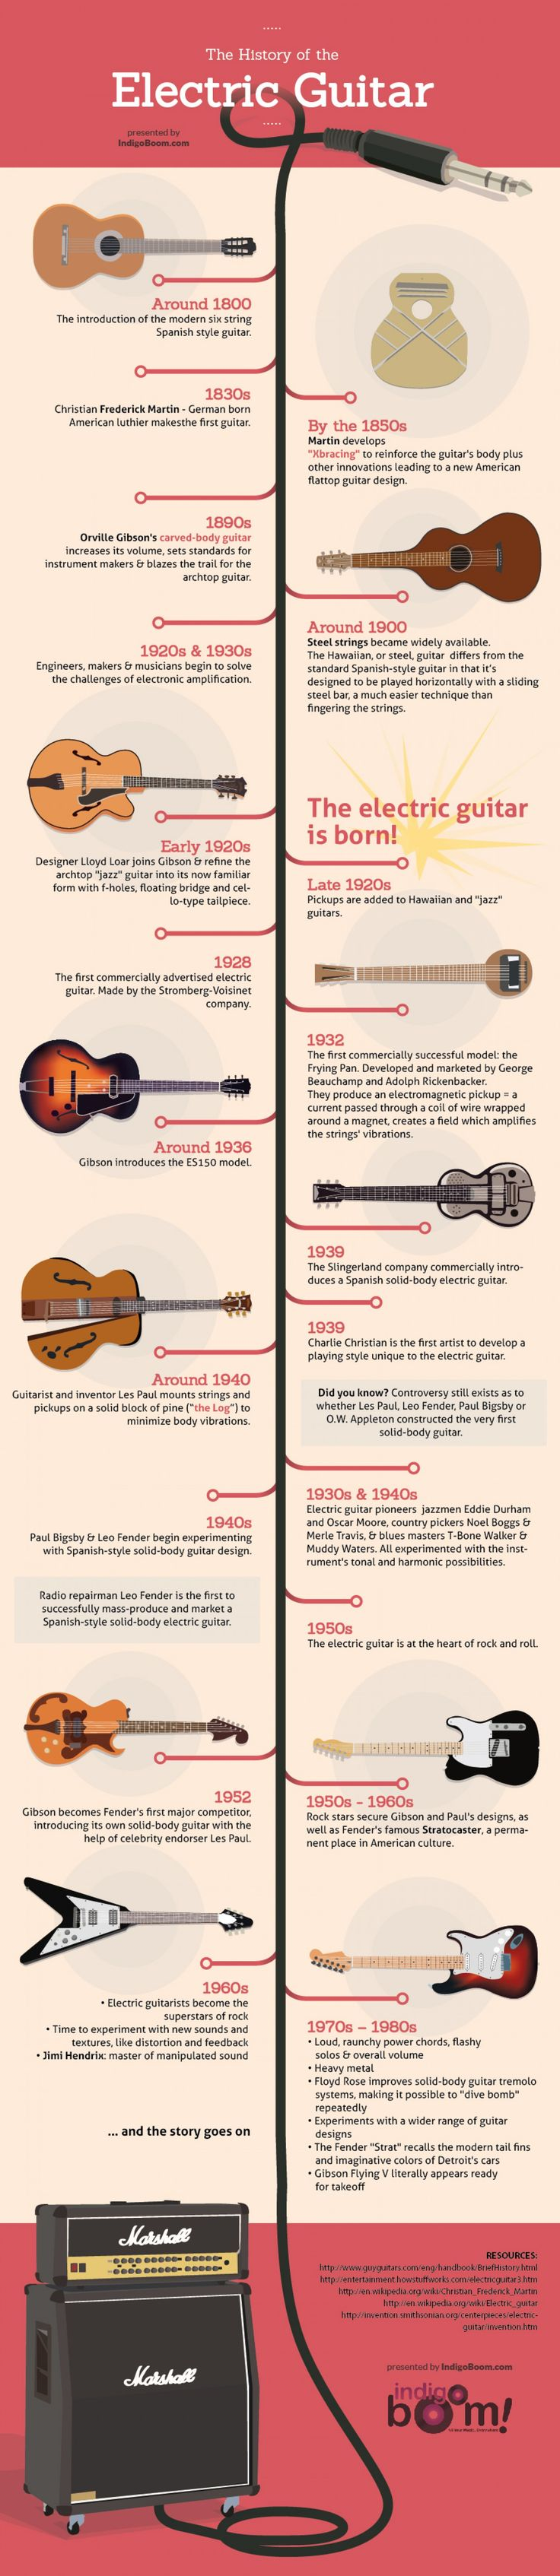 272 best images about guitar on pinterest ukulele guitar chords